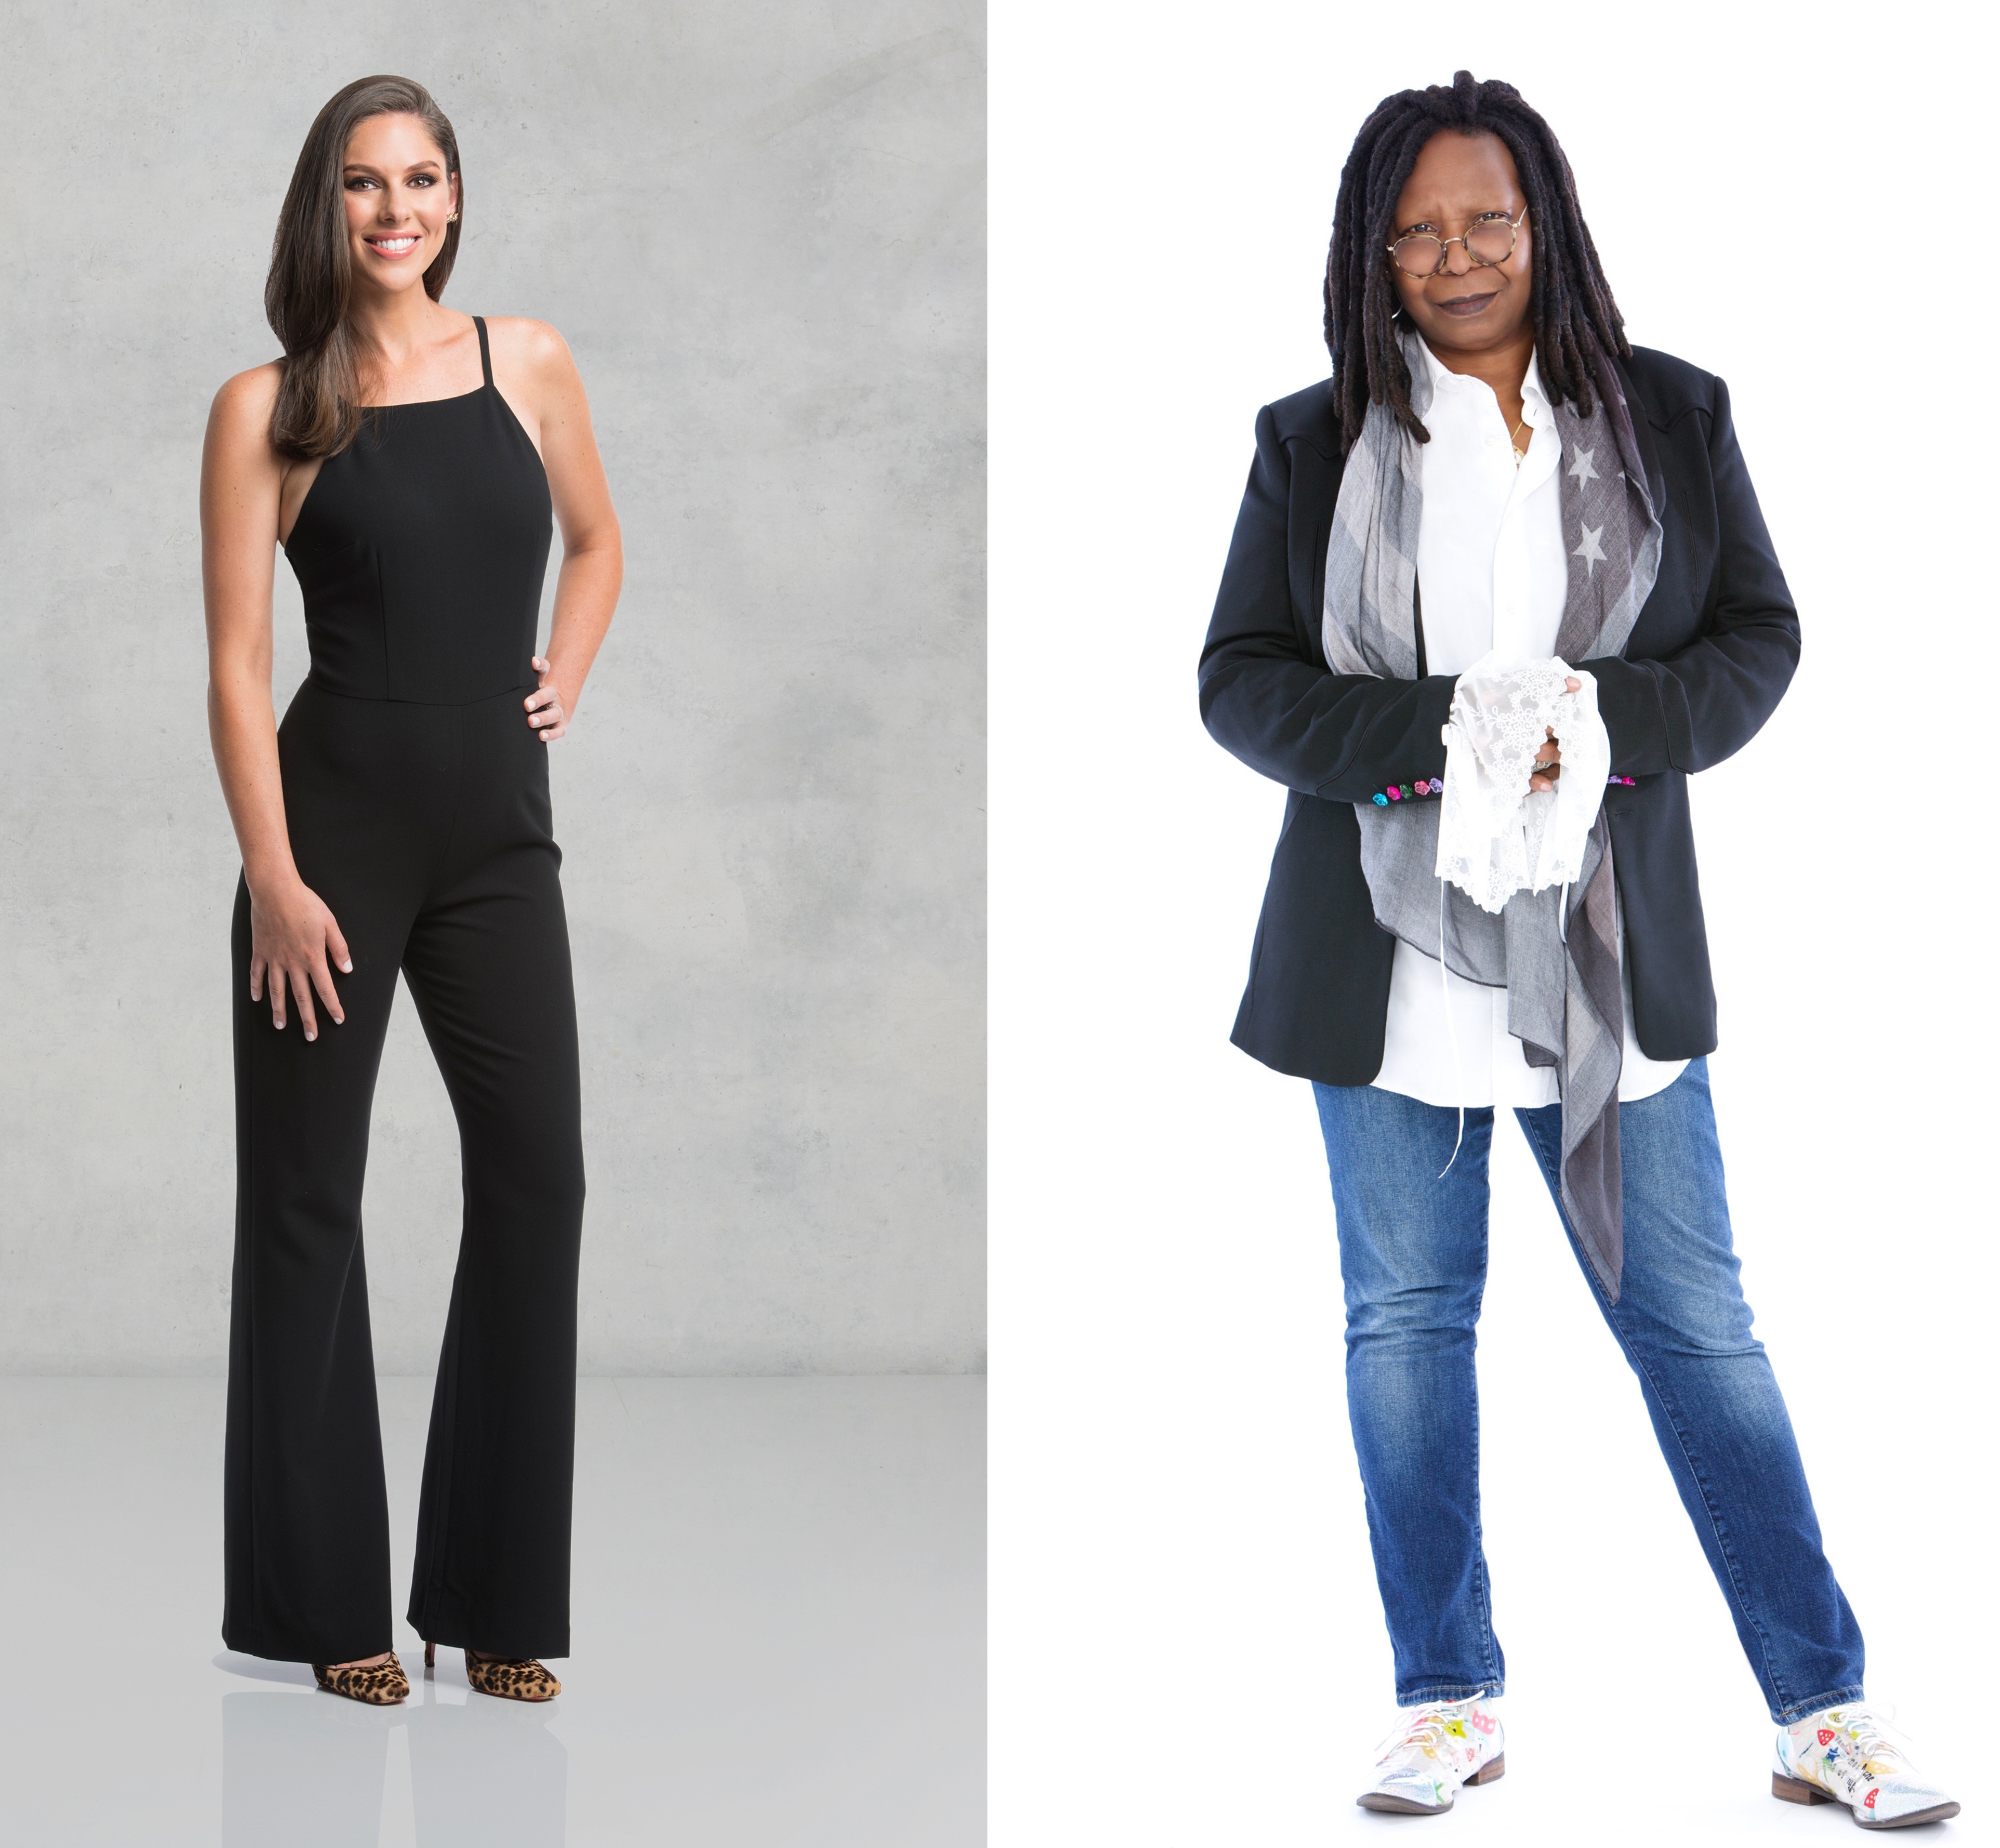 Abby Huntsman Calls Cohost Whoopi Goldberg a 'Special Mother Figure'